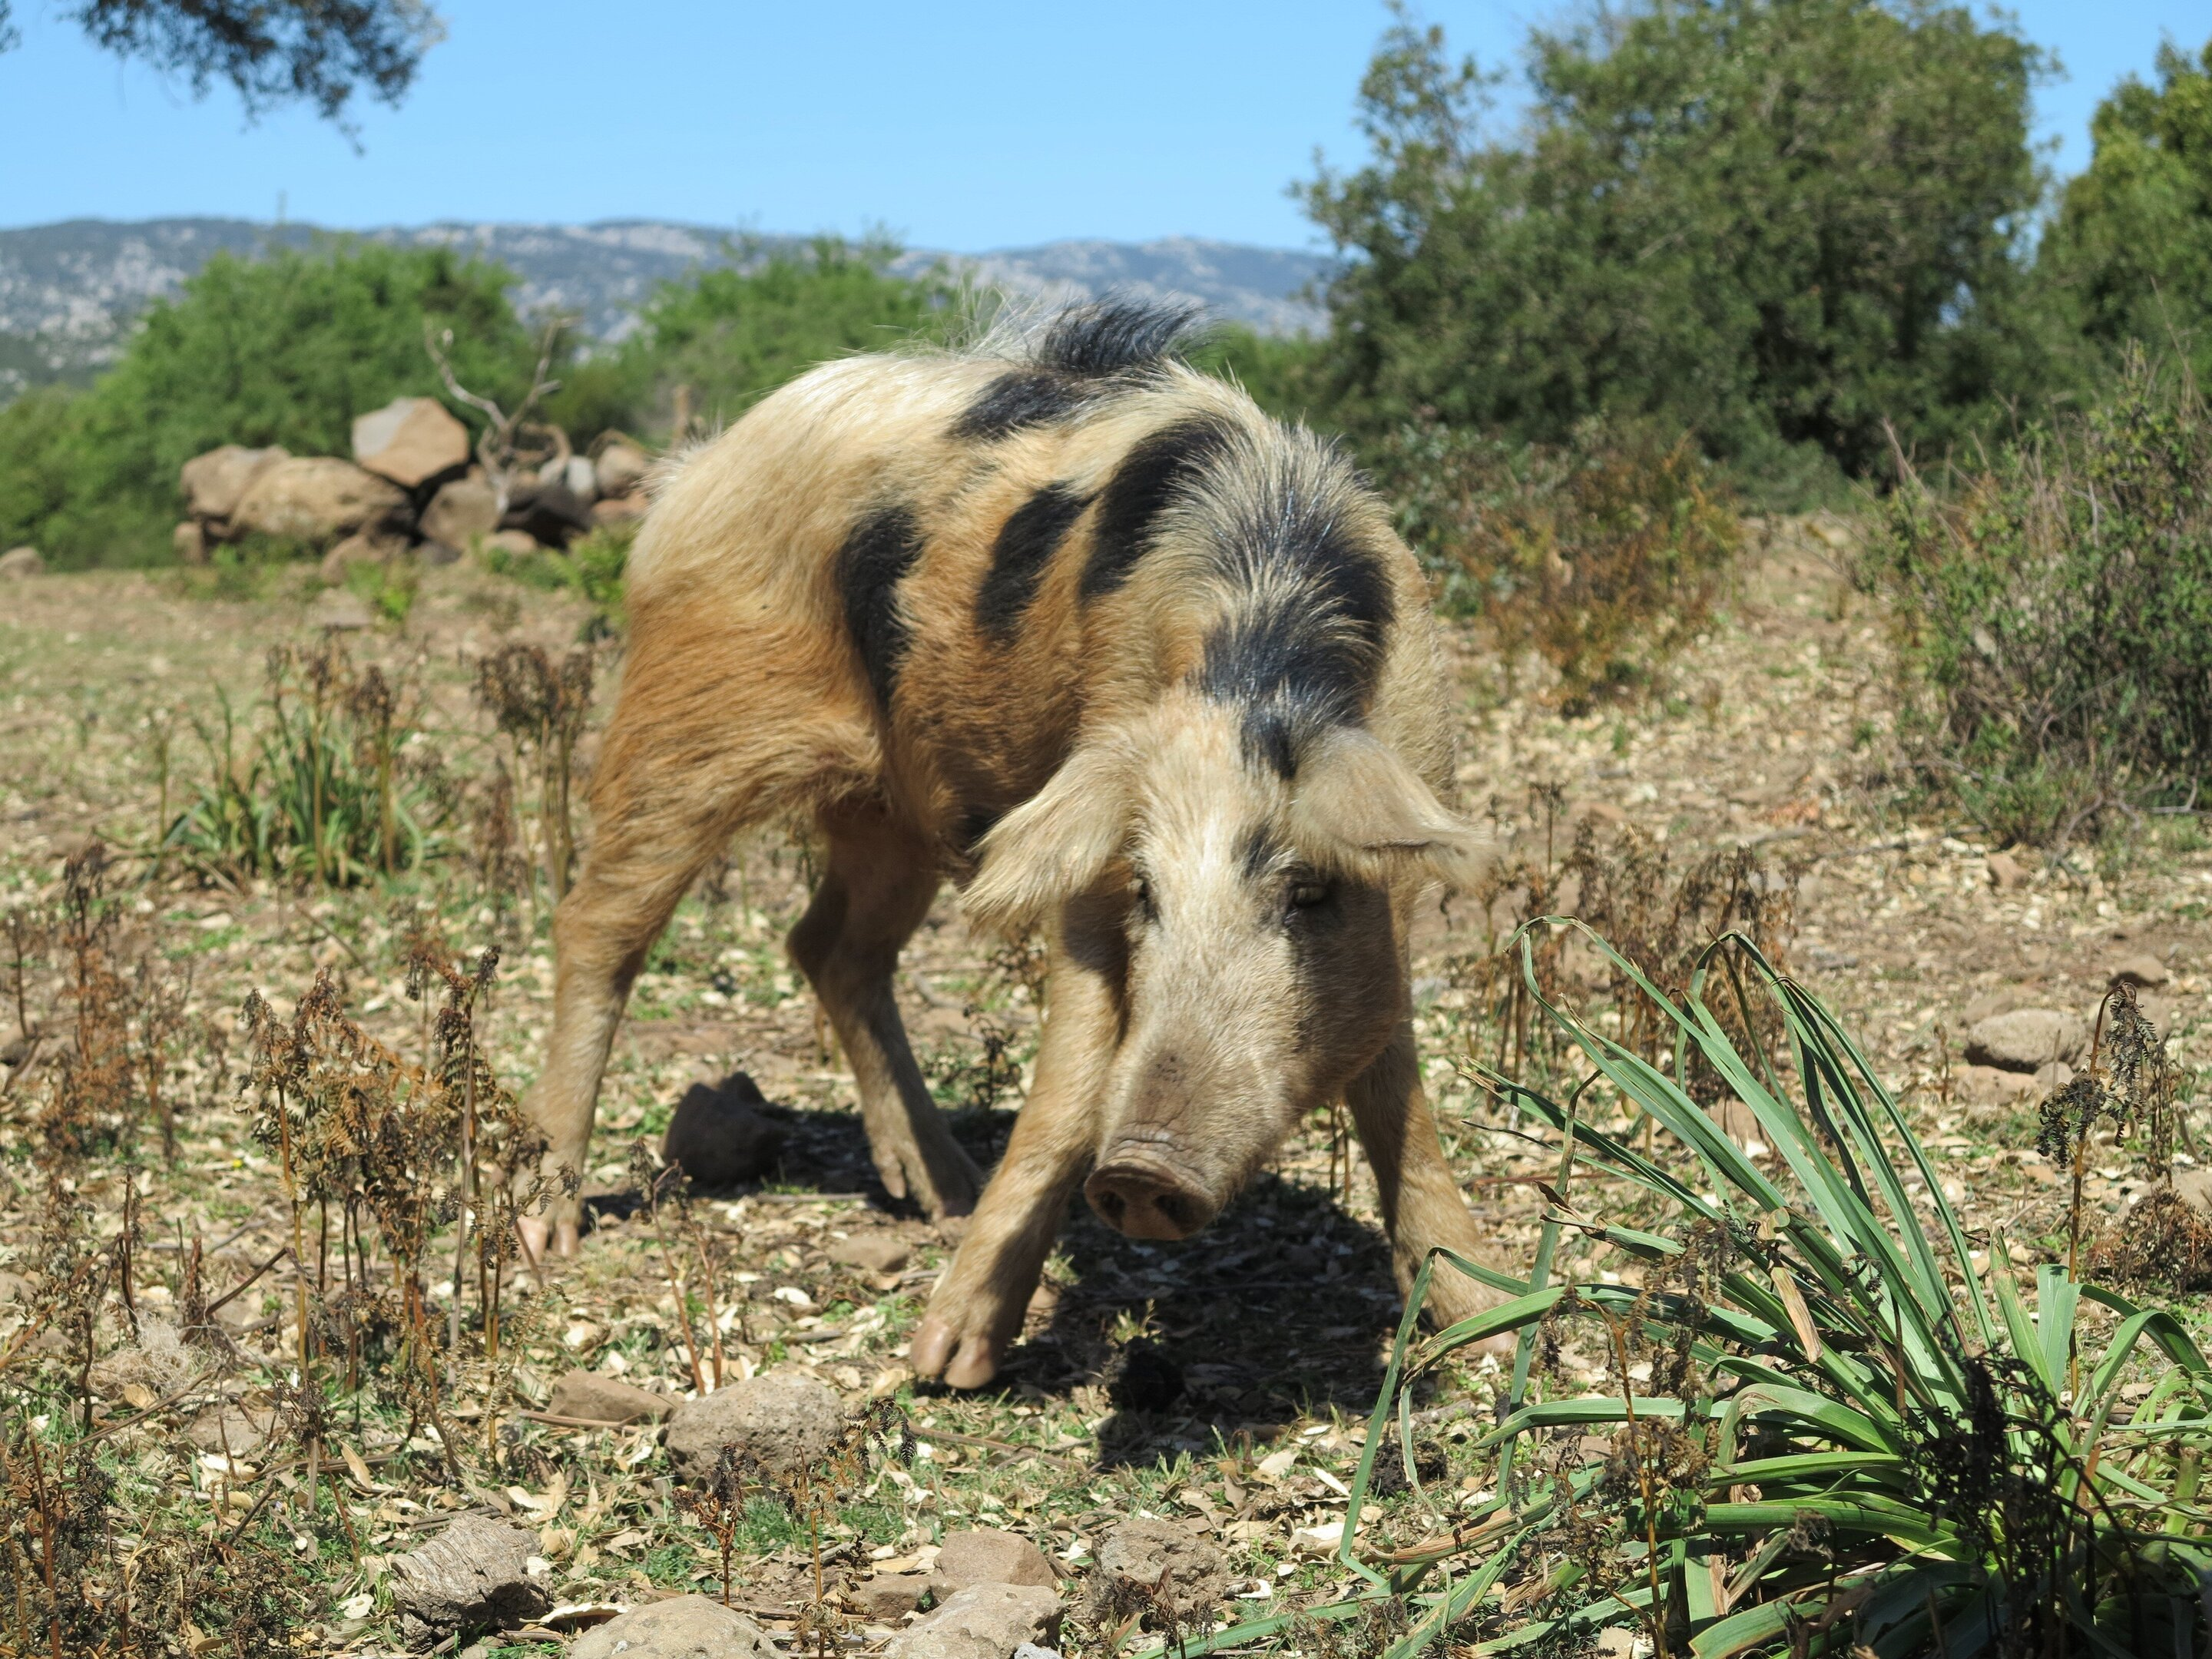 Ancient Pigs Endured A Complete Genomic Turnover After They Arrived In Europe